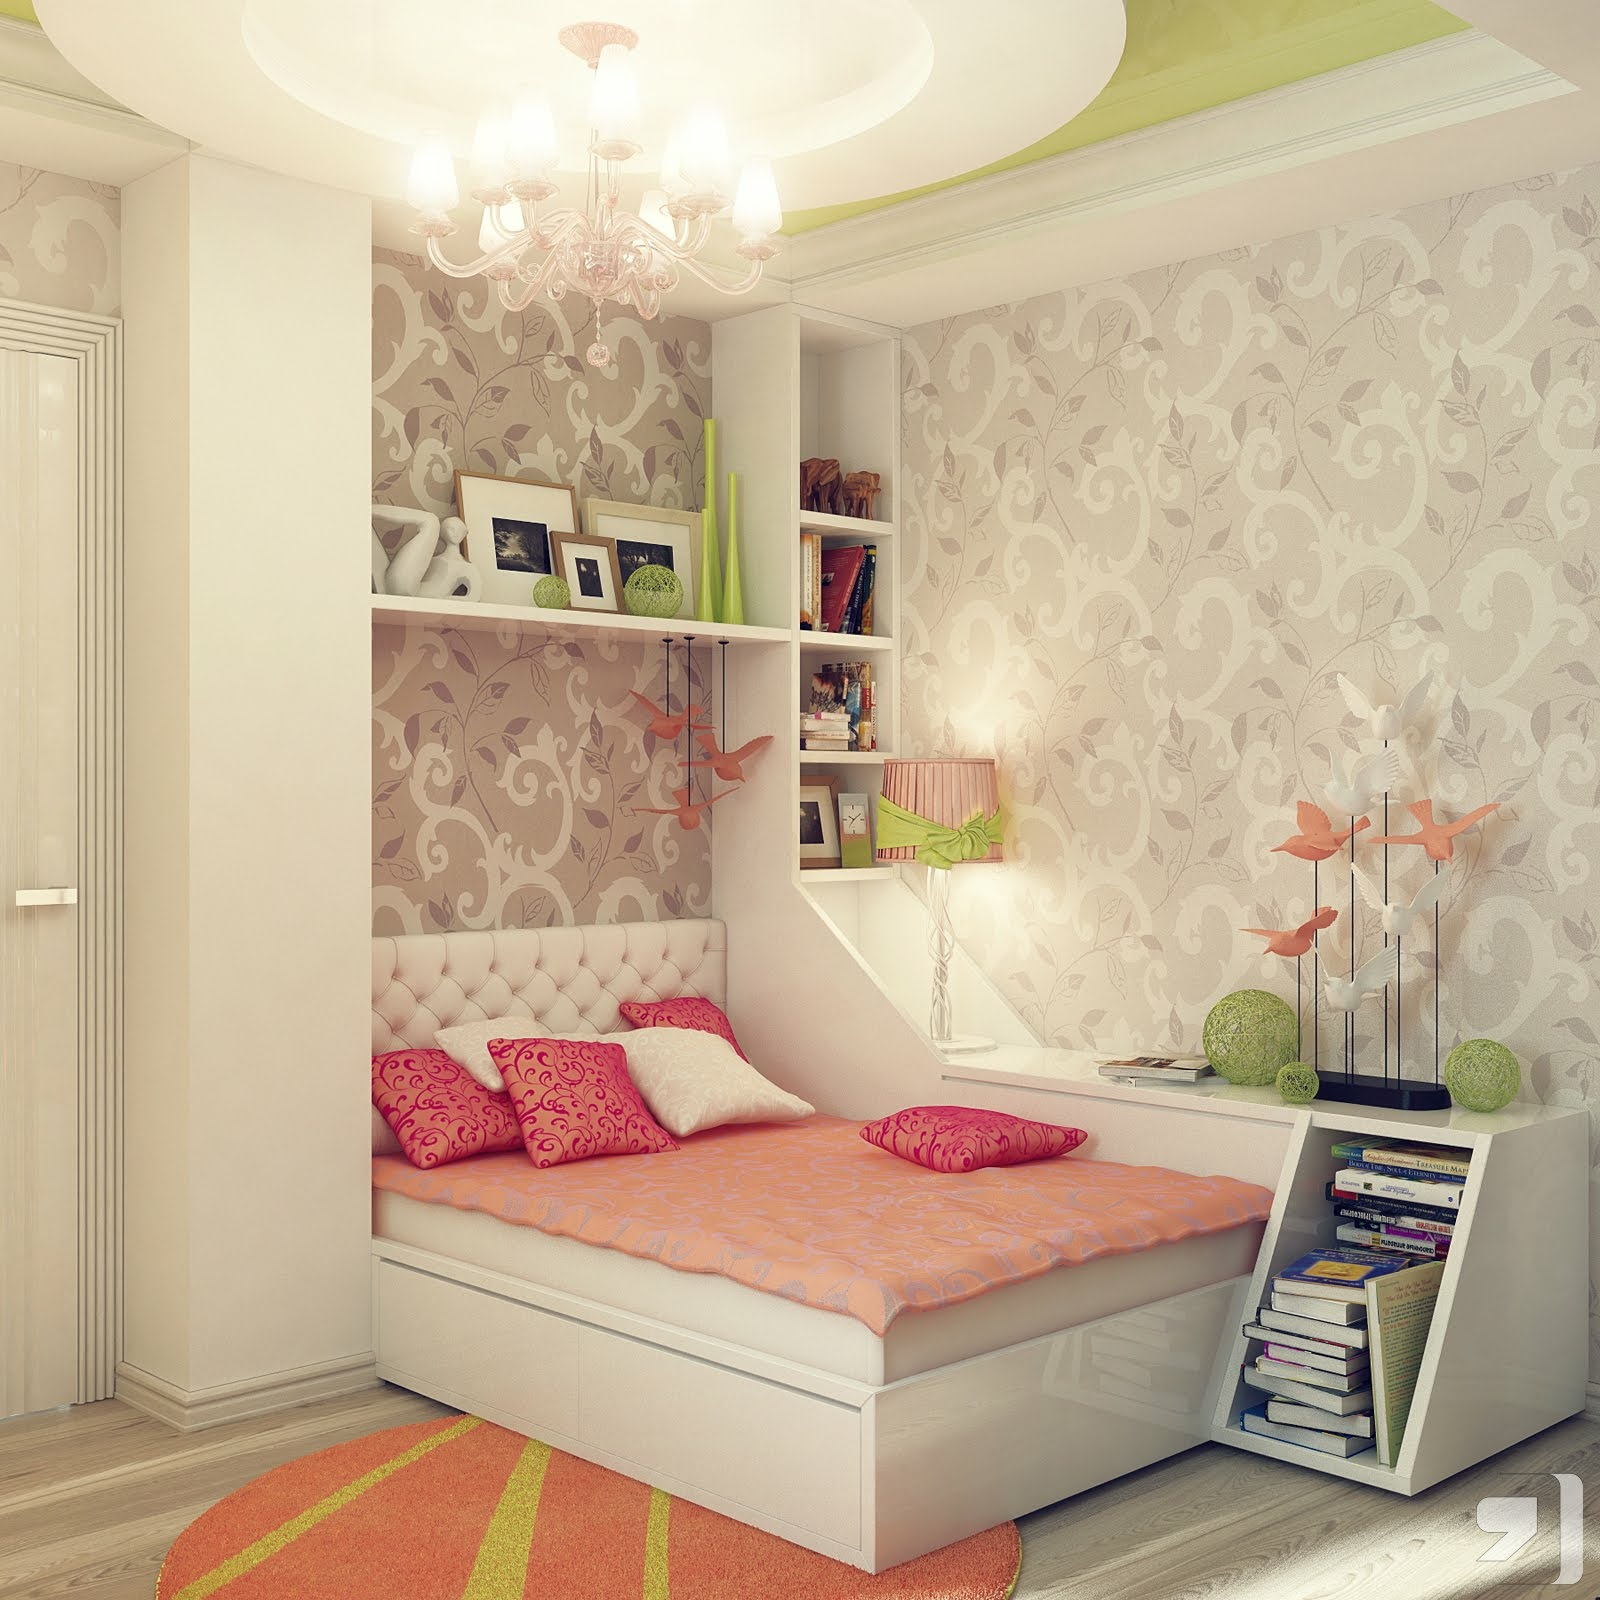 http://4.bp.blogspot.com/-hFncxjk4URw/UCU57E1fyvI/AAAAAAAAABM/q4nLcPtgbYk/s1600/1b-Peach-green-gray-girls-bedroom-decor.jpeg